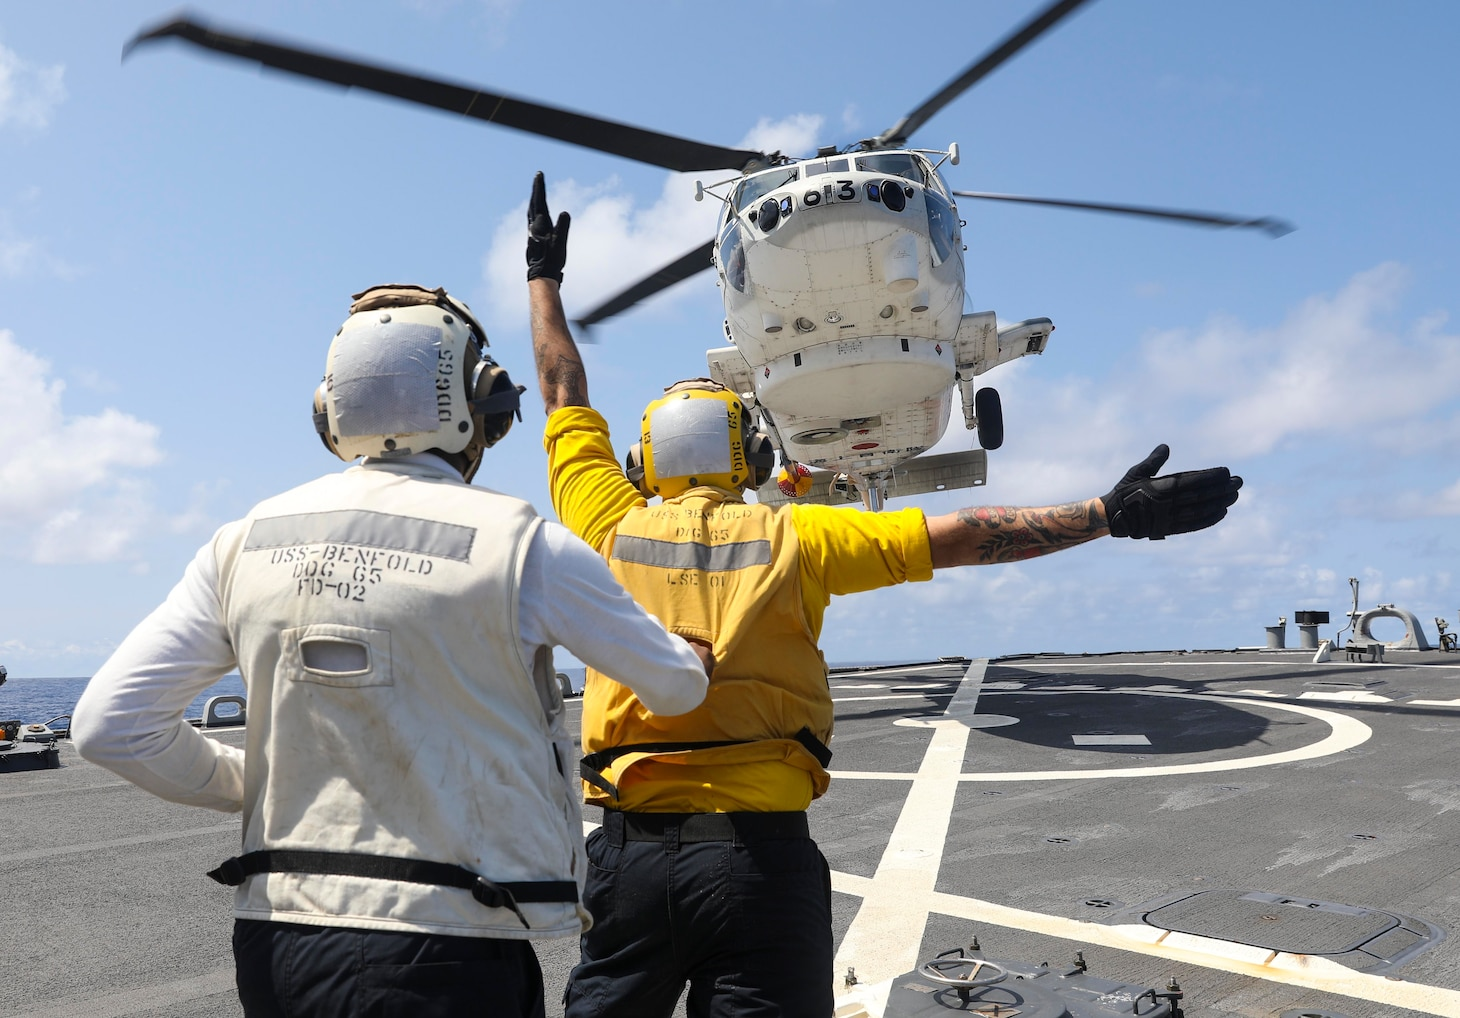 210304-N-FO714-2023 PHILIPPINE SEA (March 4, 2021) - Boatswain's Mate 2nd Class Dane Potzinger, from Ada, Mich., signals a Japan Maritime Self Defense Force SH-60 Seahawk to land on the flight deck of the Arleigh Burke-class guided-missile destroyer USS Benfold (DDG 65) while Boatswain's Mate 1st Class Glenrick Henry, from Bronx, N.Y., spots for safety during the annual U.S.-Japan Bilateral Advanced Warfighting Training Exercise. BAWT focuses on joint training and interoperability of coalition forces, and enables real-world proficiency and readiness in response to any contingency. (U.S. Navy photo by Mass Communication Specialist 2nd Class Deanna C. Gonzales)